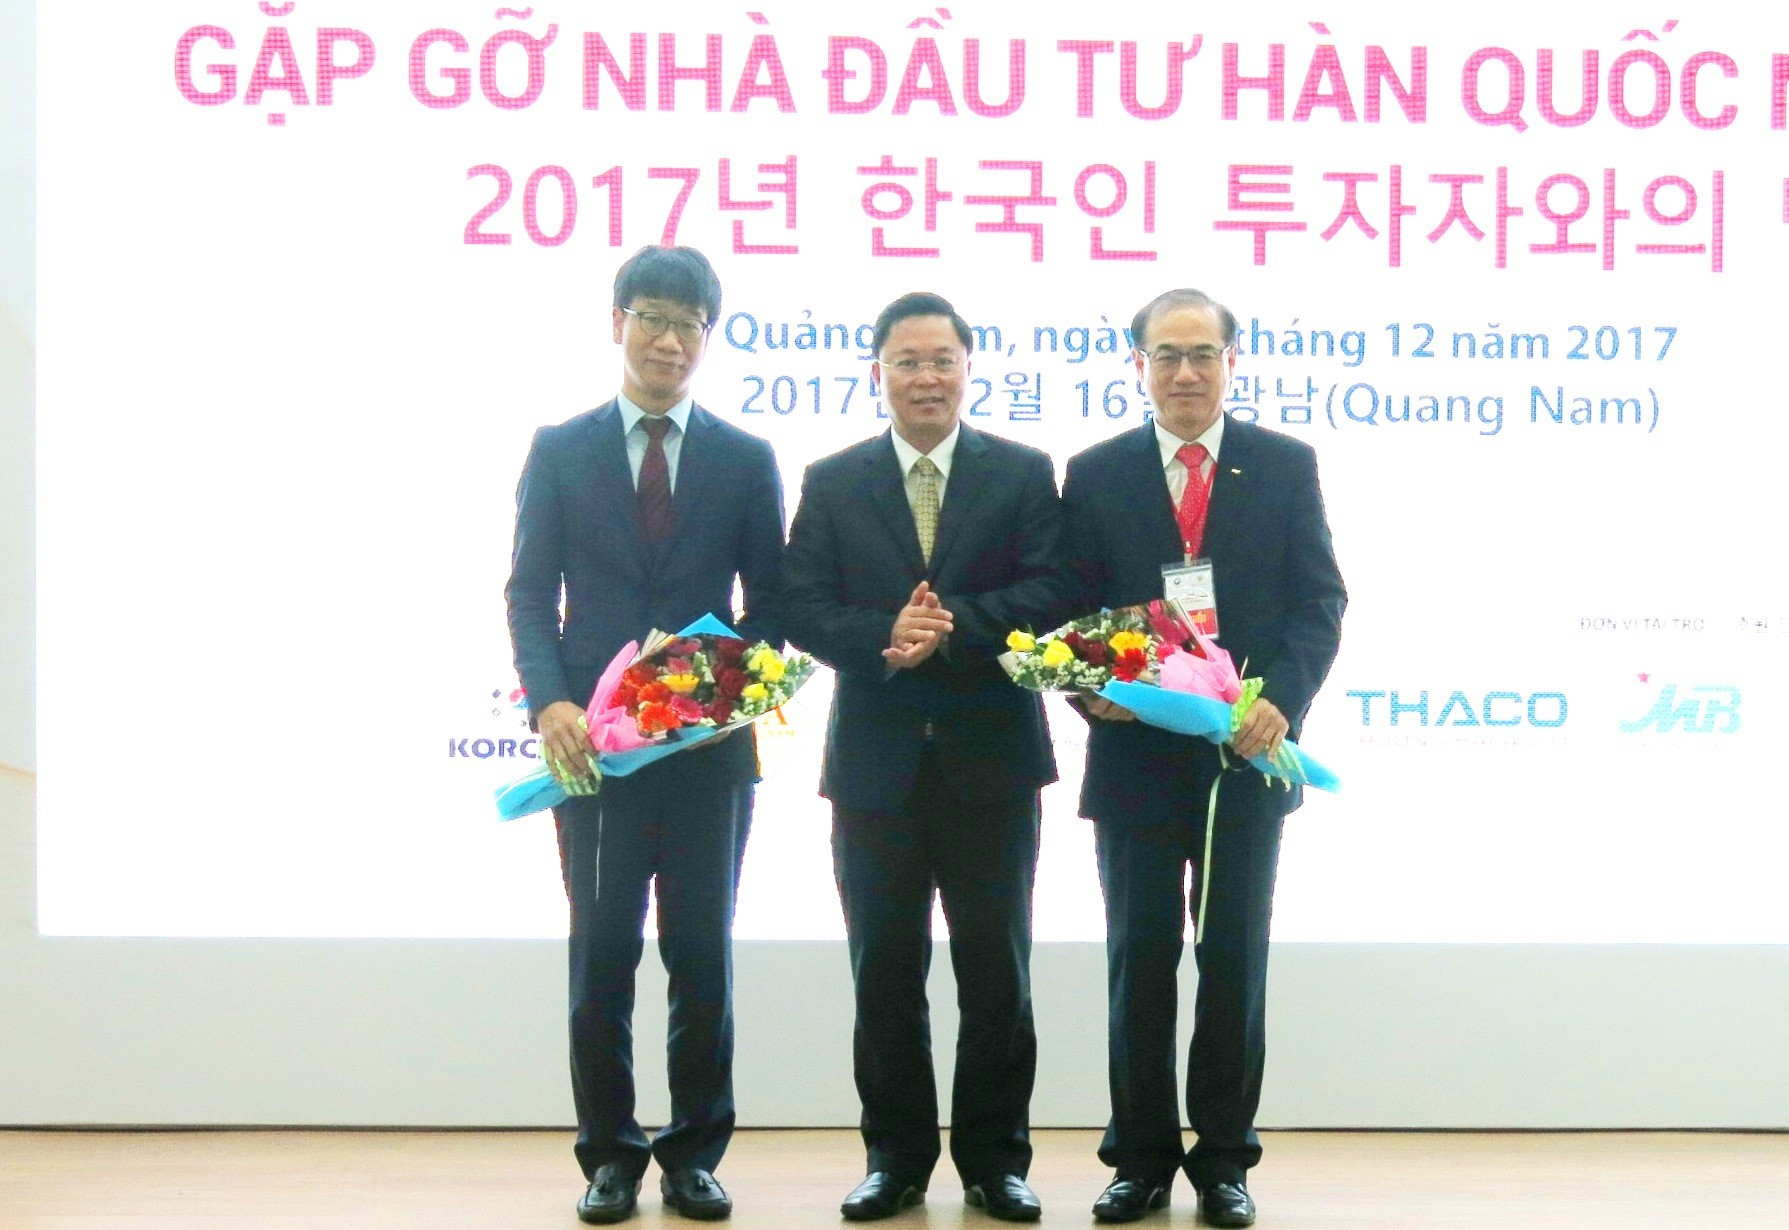 Mr. Le Tri Thanh gives flowers to South Korean economic-trade organizations.